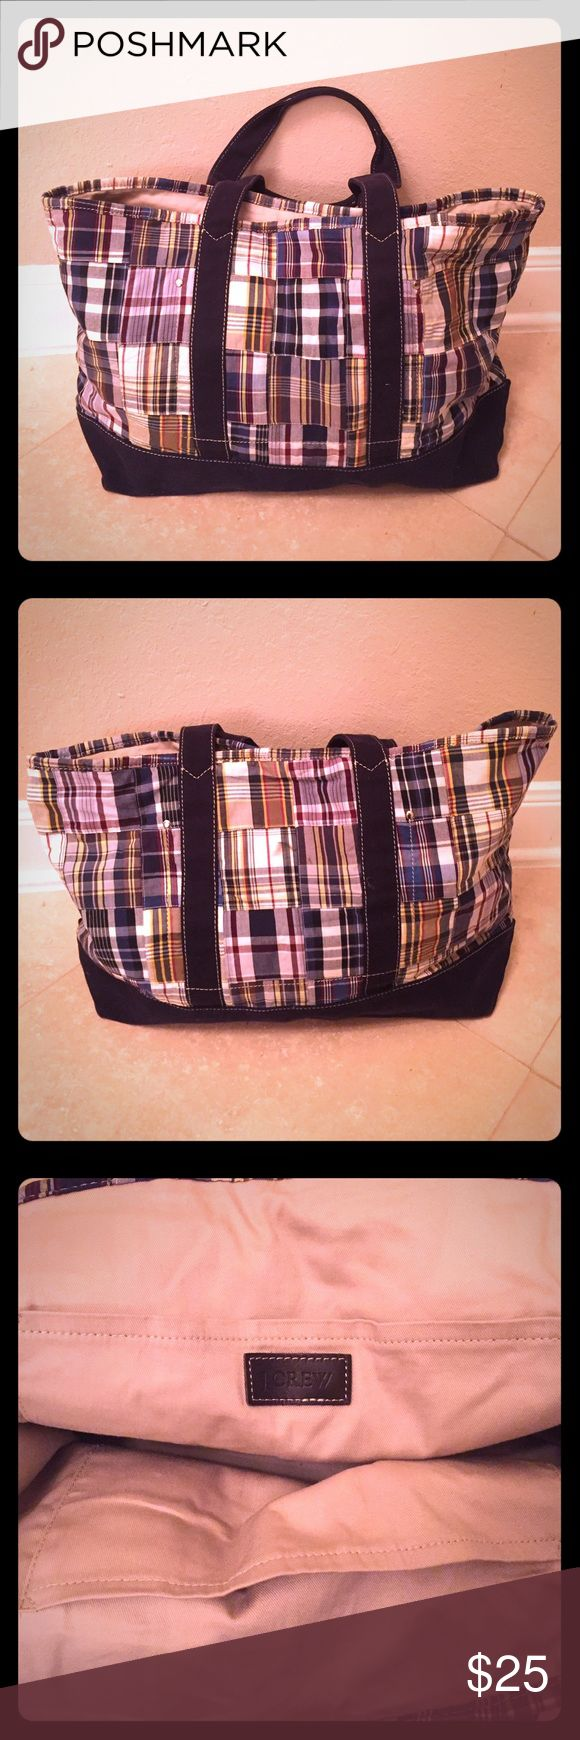 J Crew Tote Bag Casual J. Crew Tote Bag.  Multicolor plaid with navy blue bottom and straps. j crew Bags Totes